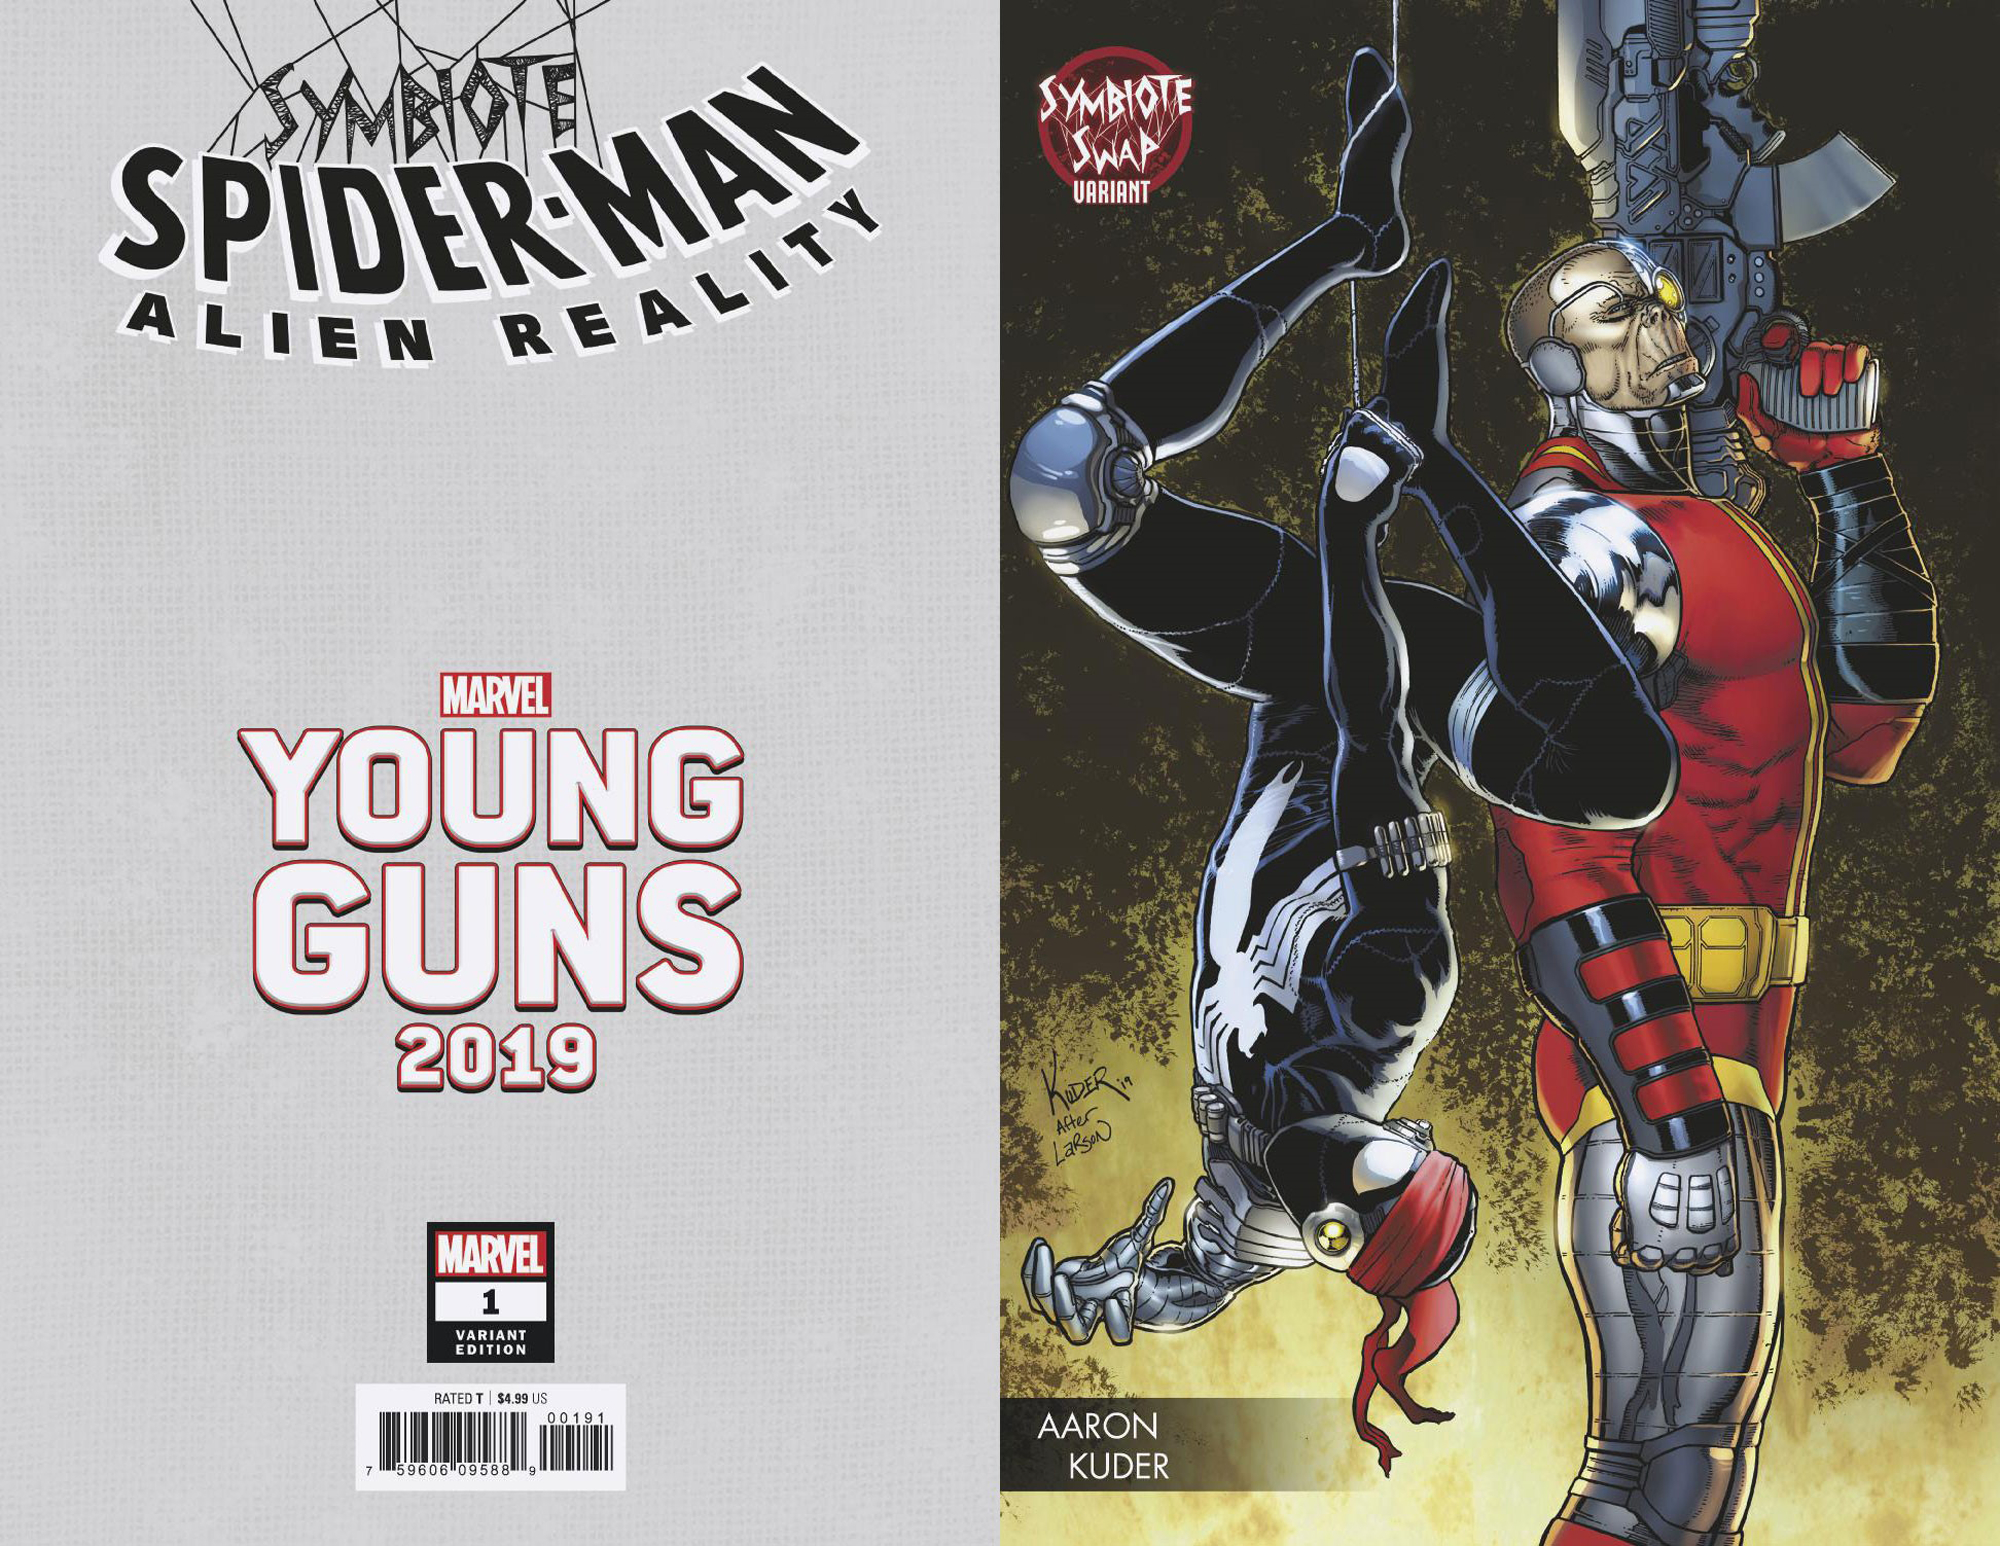 SYMBIOTE SPIDER-MAN ALIEN REALITY #1 (OF 5) KUDER YOUNG GUNS